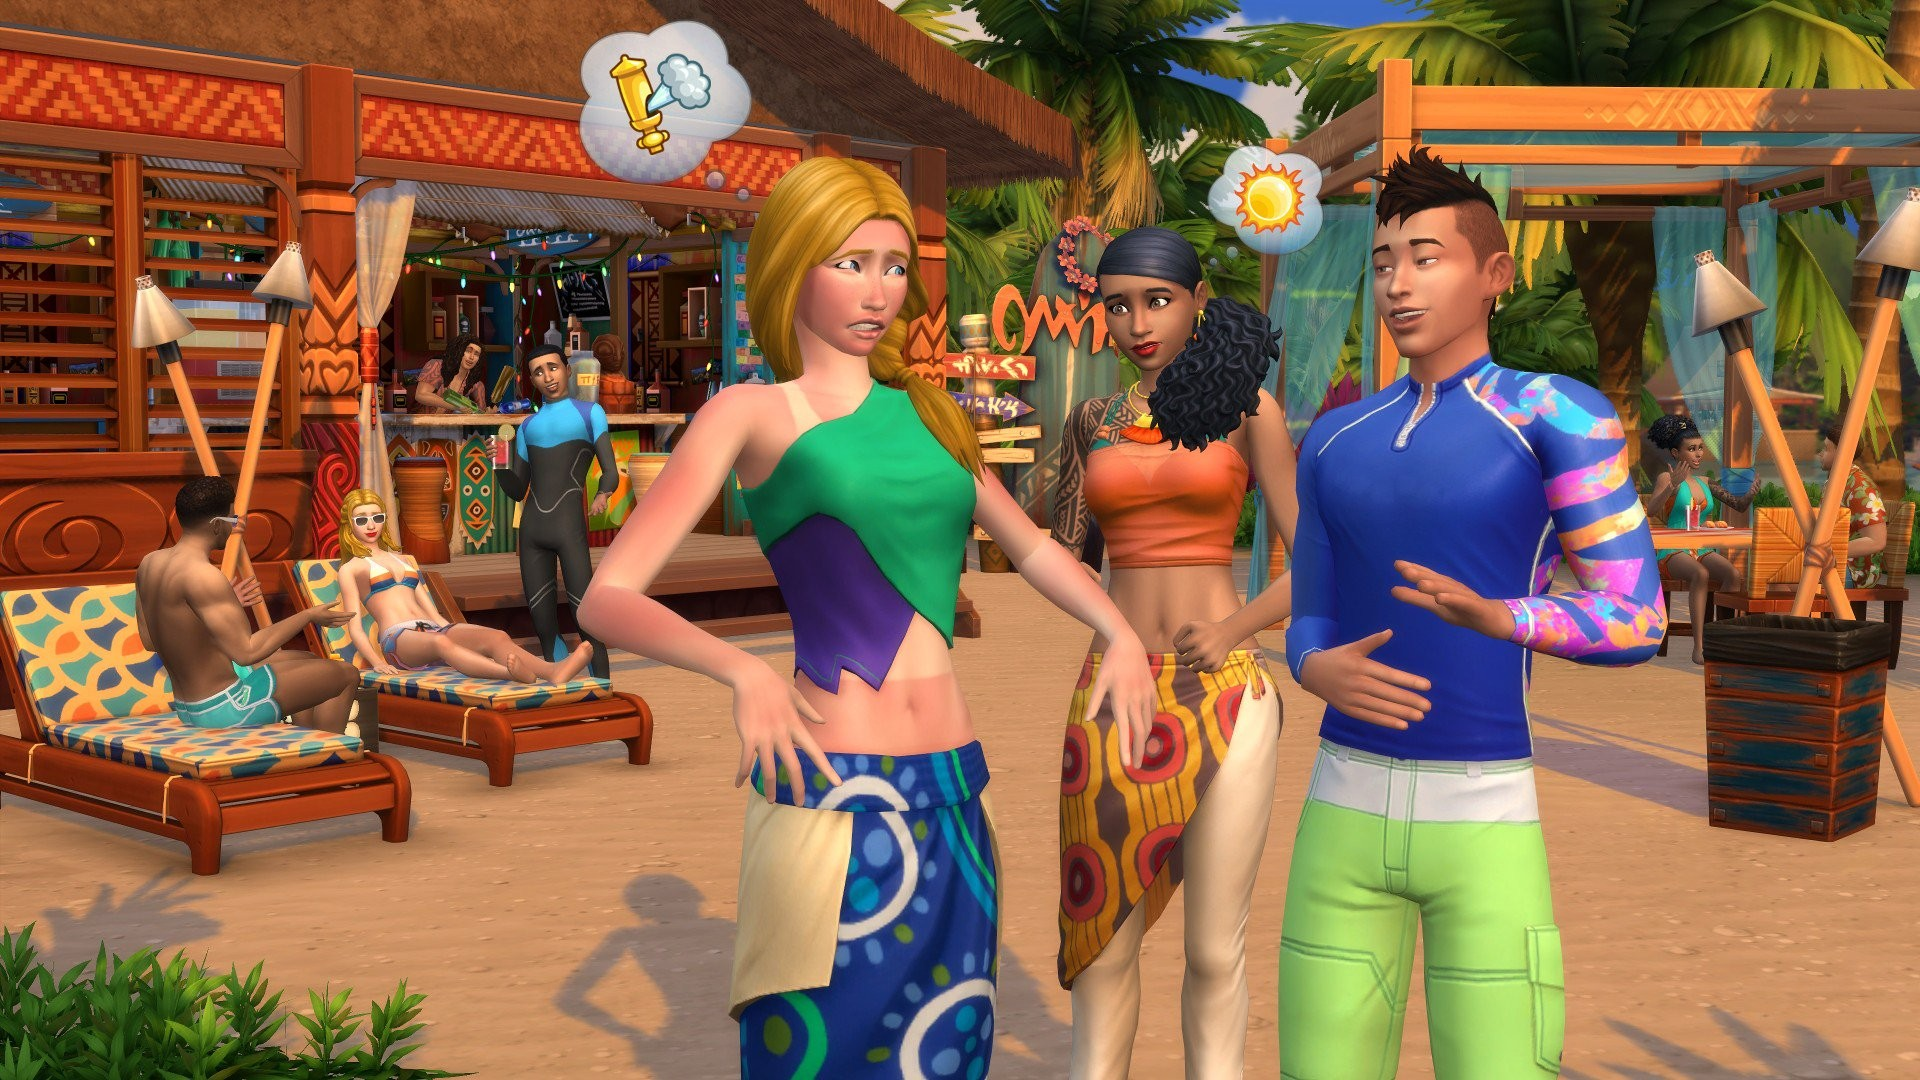 The Sims 5 Release Date and Sims 4 Timeline